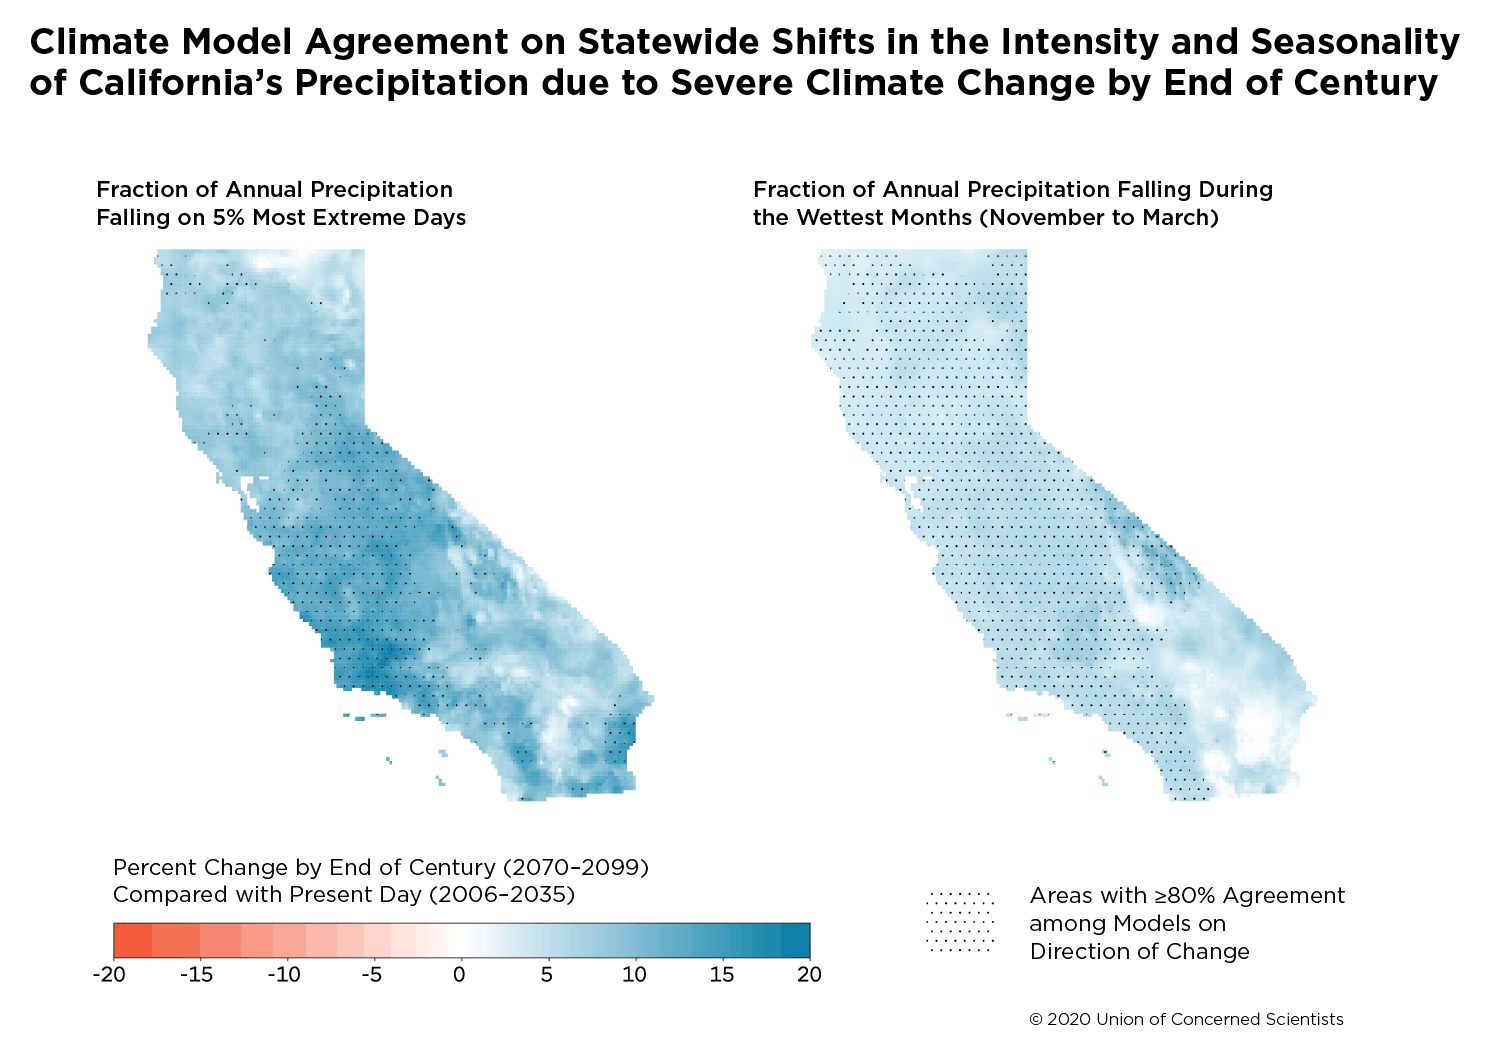 Climate model on shifts in intensity and seasonality of California's precipitation due to severe climate change